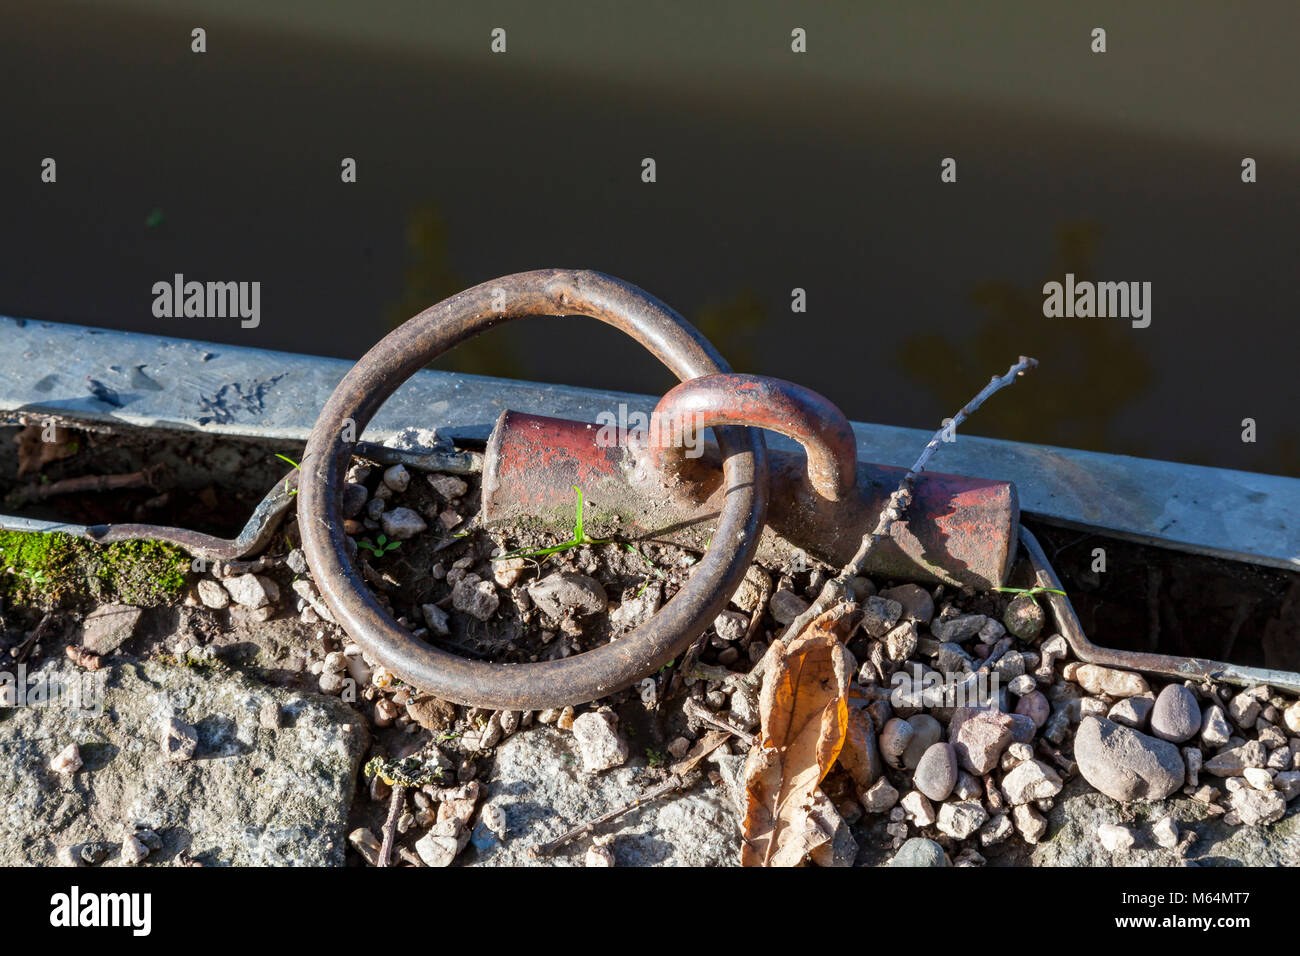 Rusty mooring ring at Tatenhill Lock on the Trent and Mersey canal, Branston, Staffordshire, UK - Stock Image